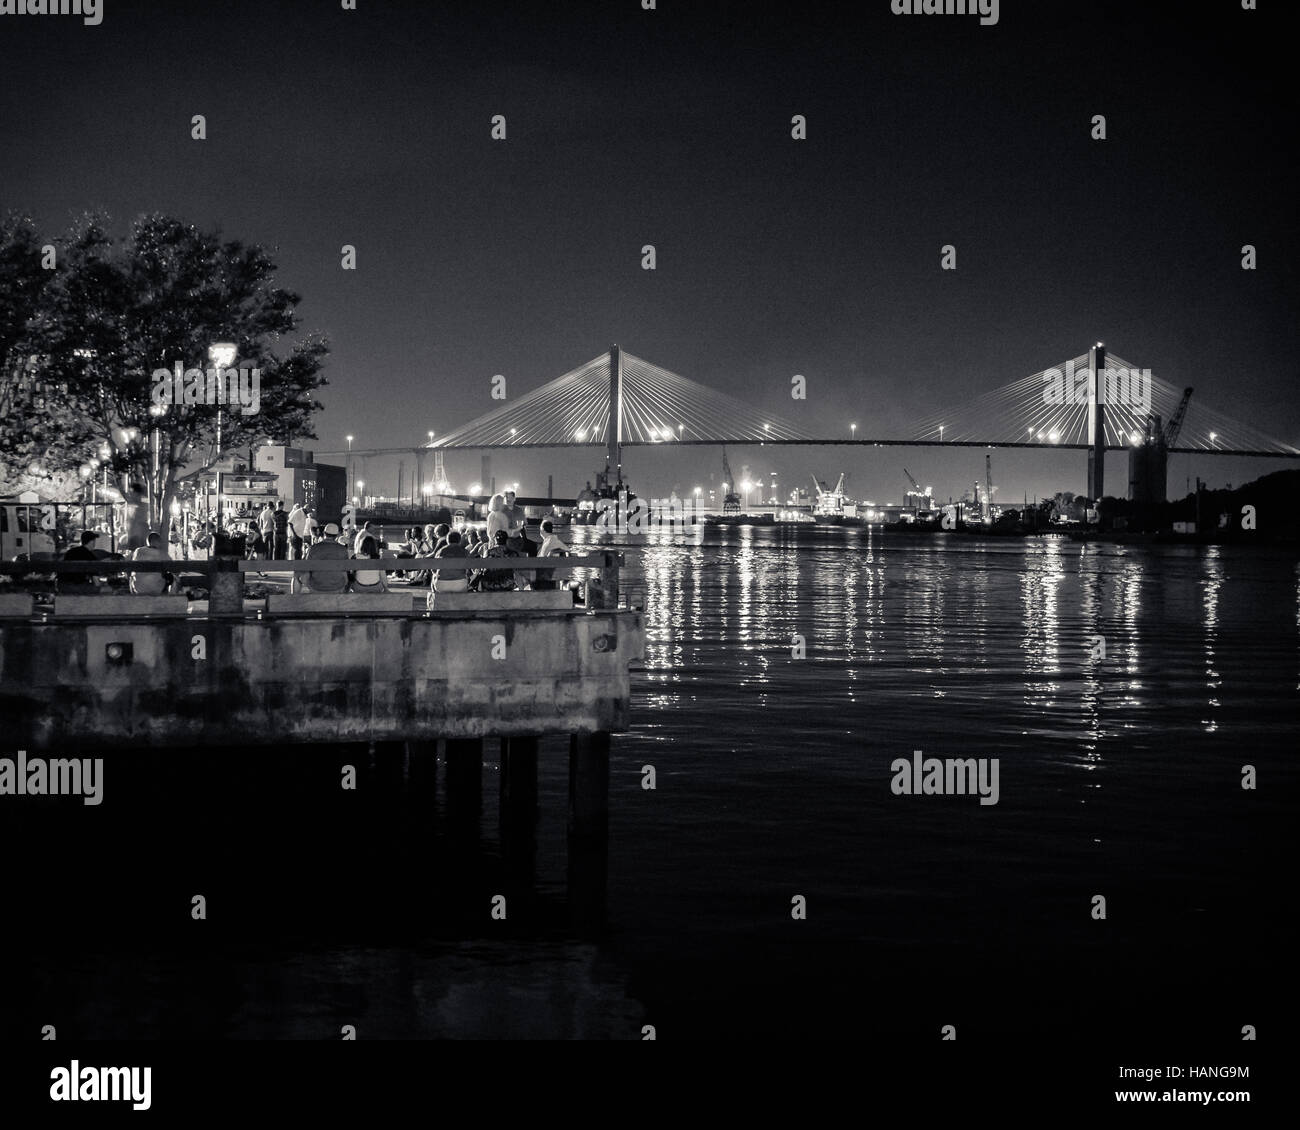 People gather by the quayside at night with a view of the Talmadge Memorial Bridge in Savannah - Stock Image